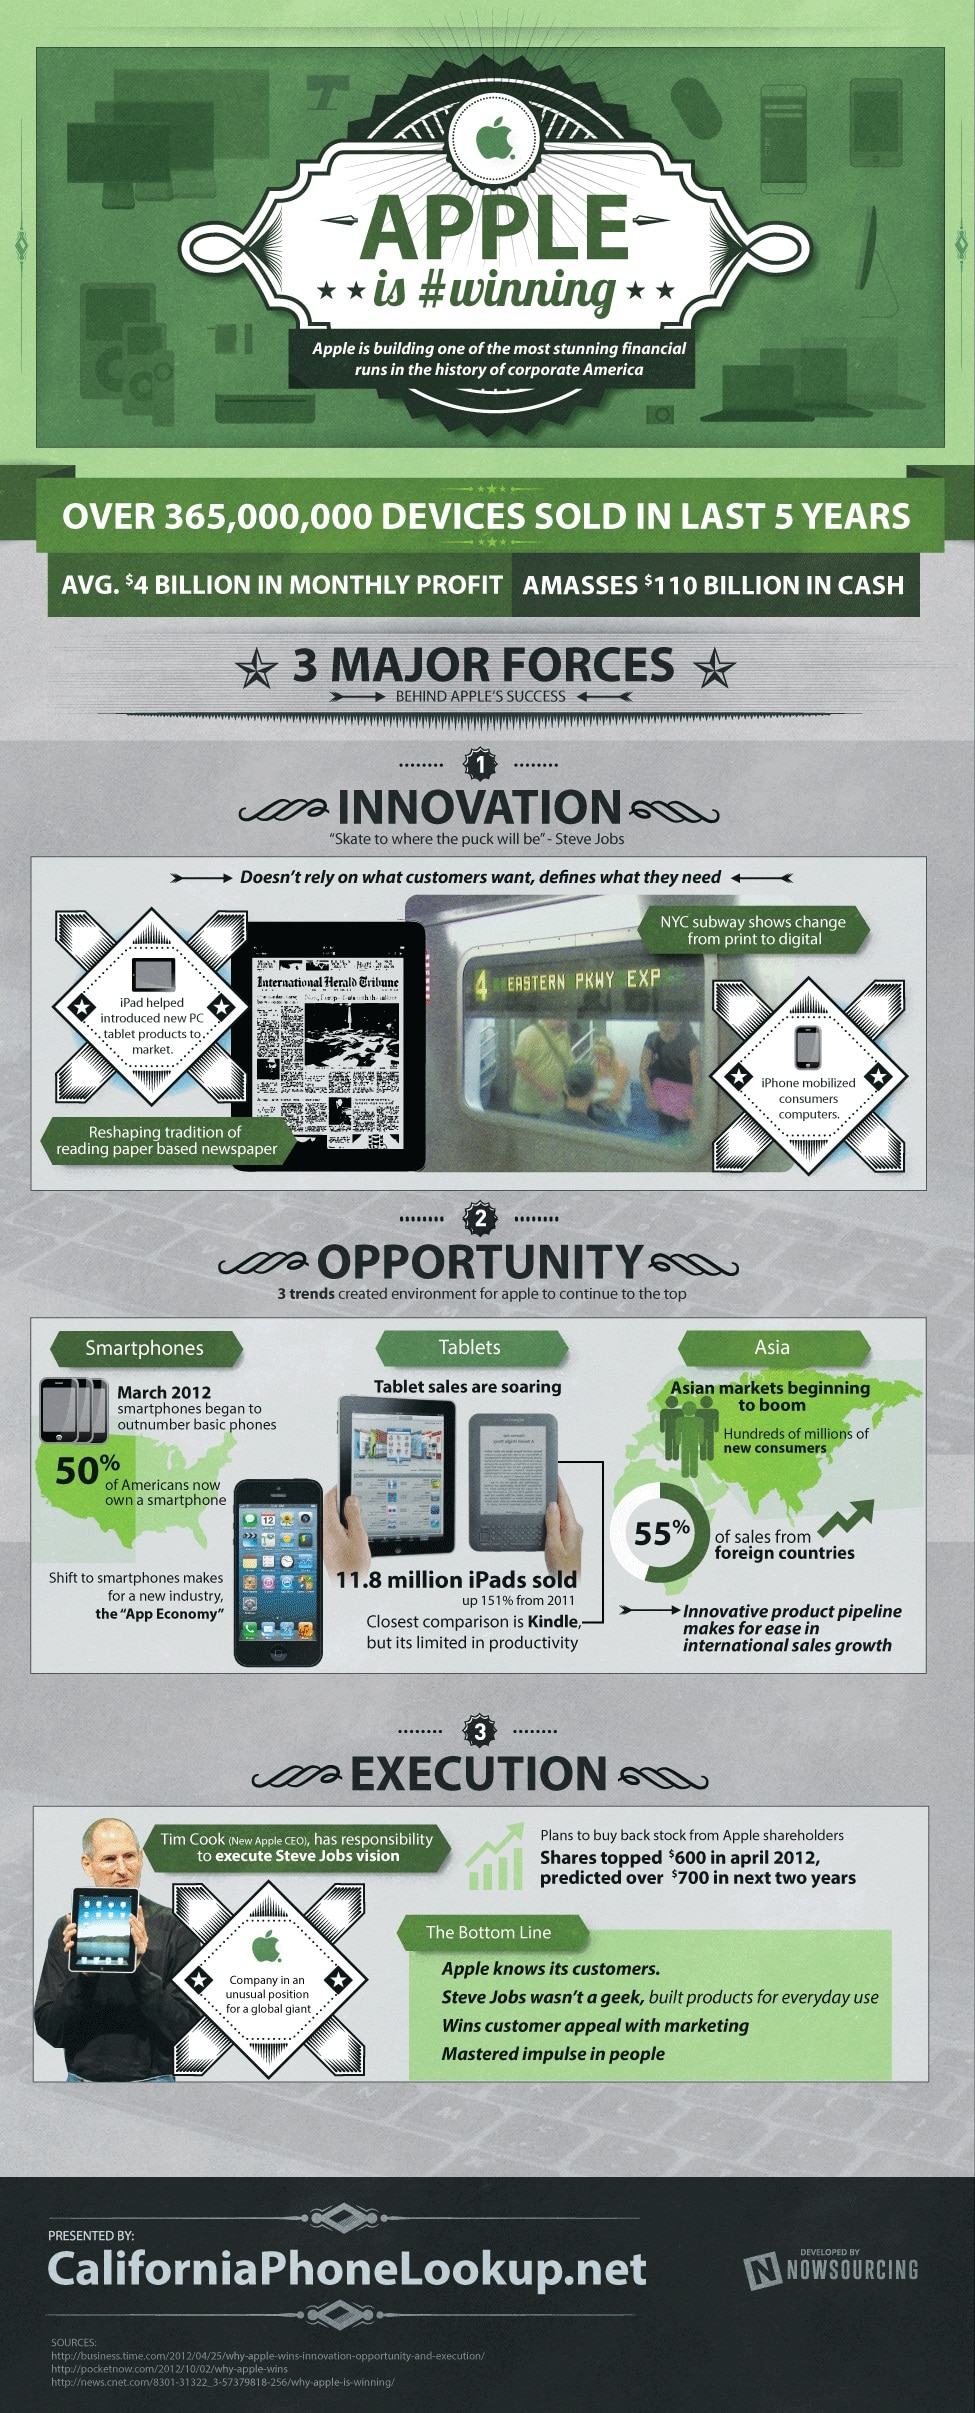 Apple Strategies That Make Apple Winning [Infographic]